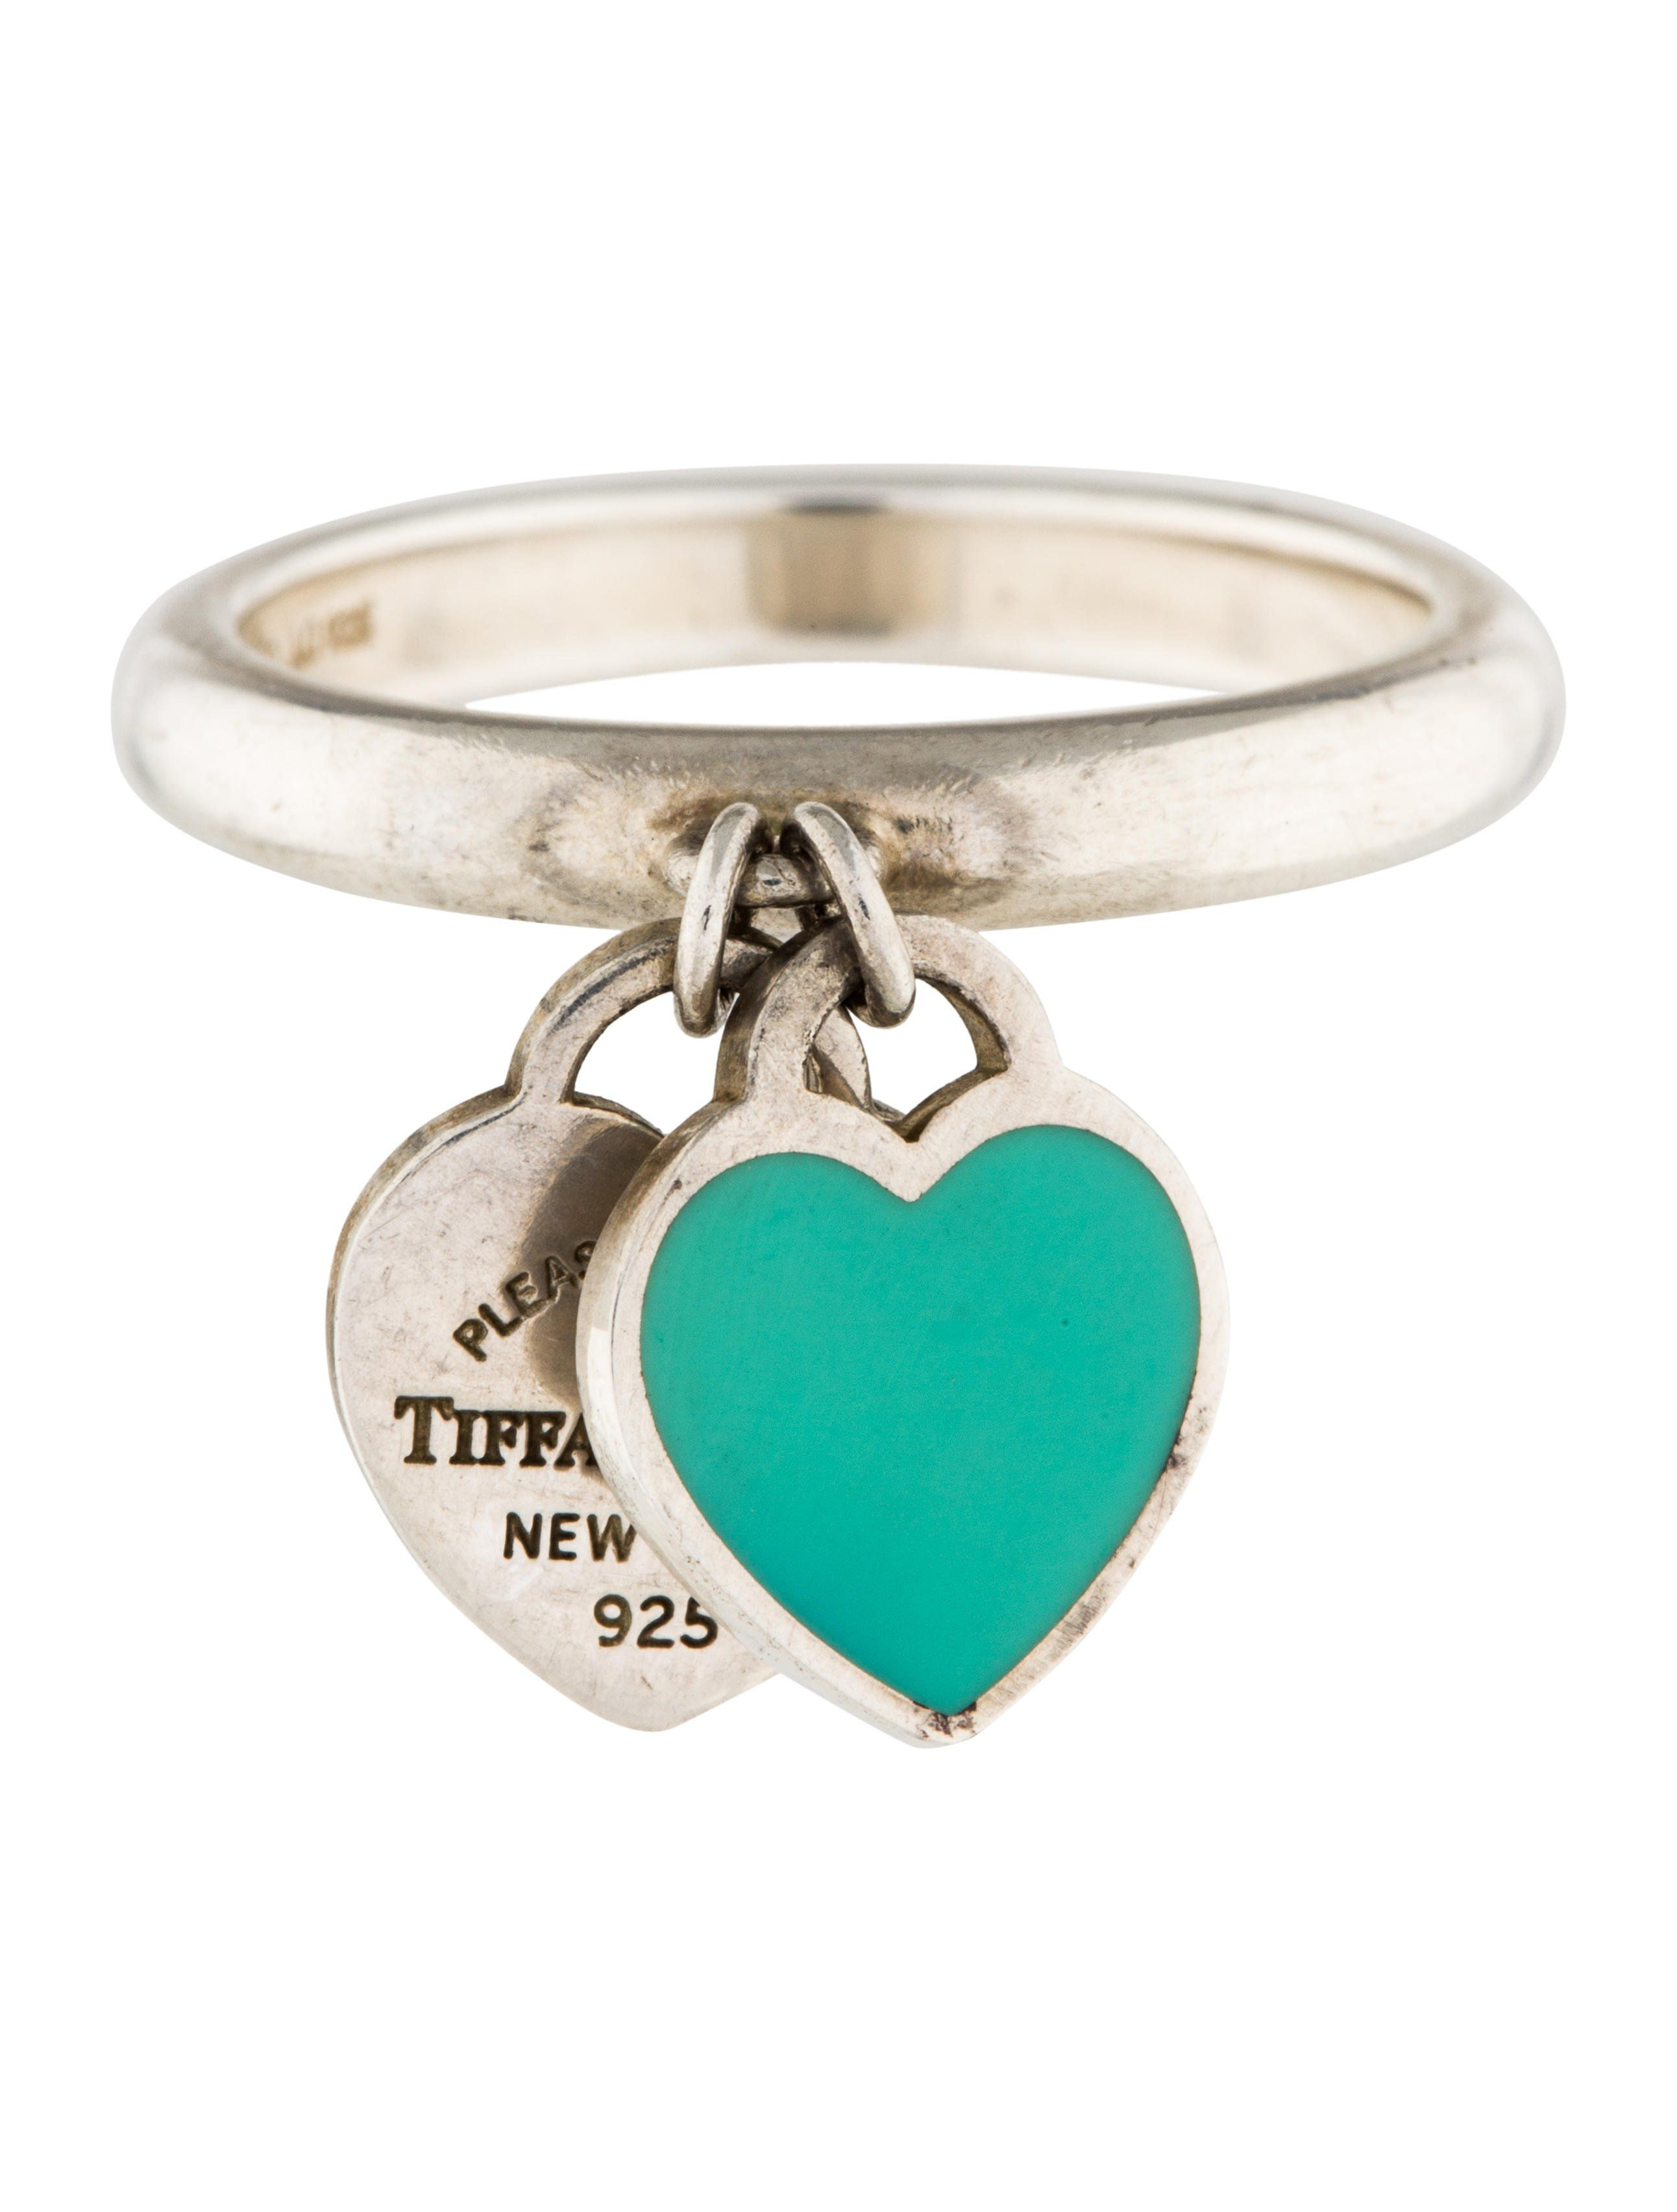 8c643cda8 Sterling silver Tiffany & Co. Return To Tiffany Double Heart Charm ring  with signature blue enamel.